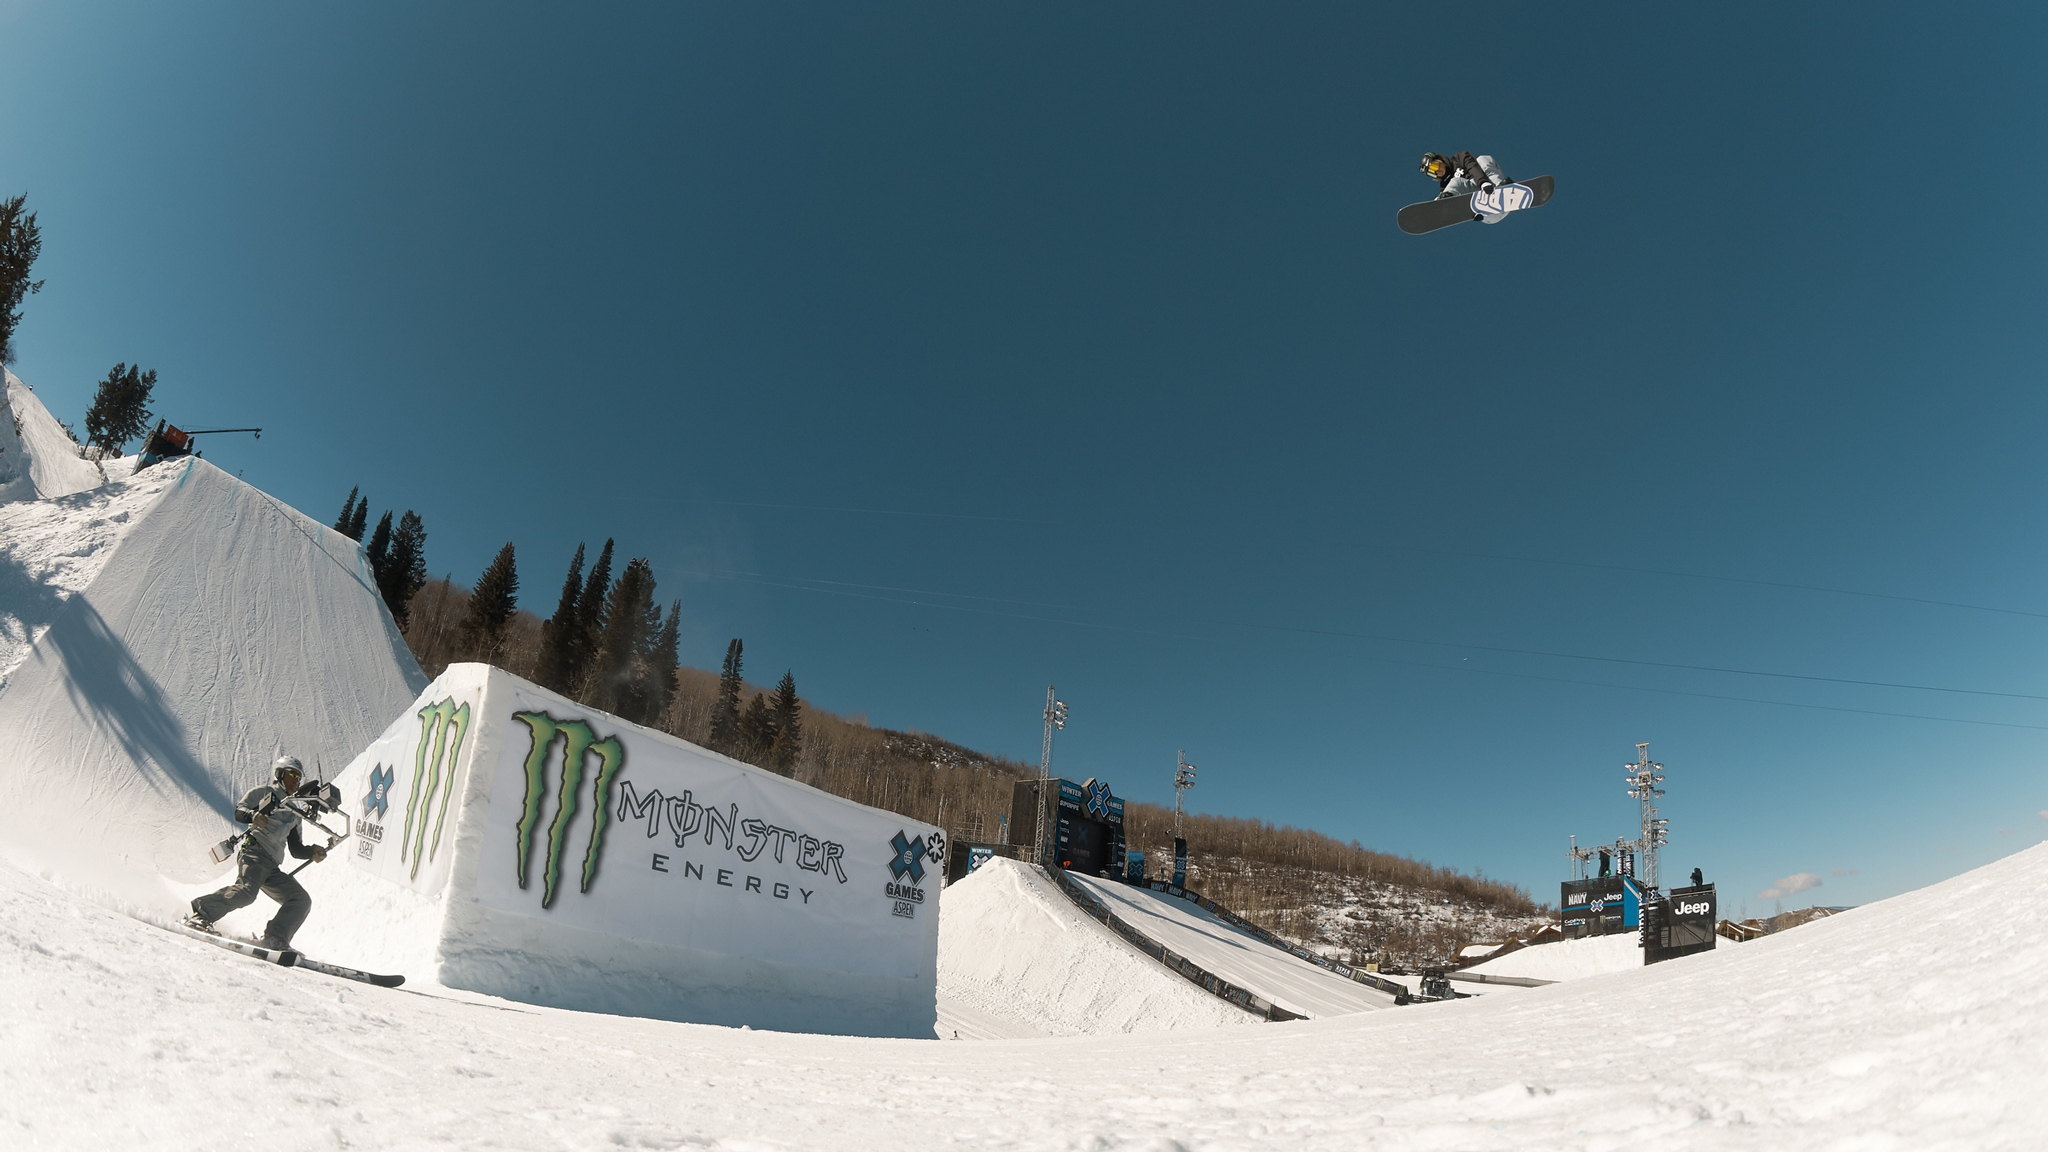 Sage Kotsenburg is one of the many X Games athletes affected by Nike's decision to drop its snowboard and ski programs.